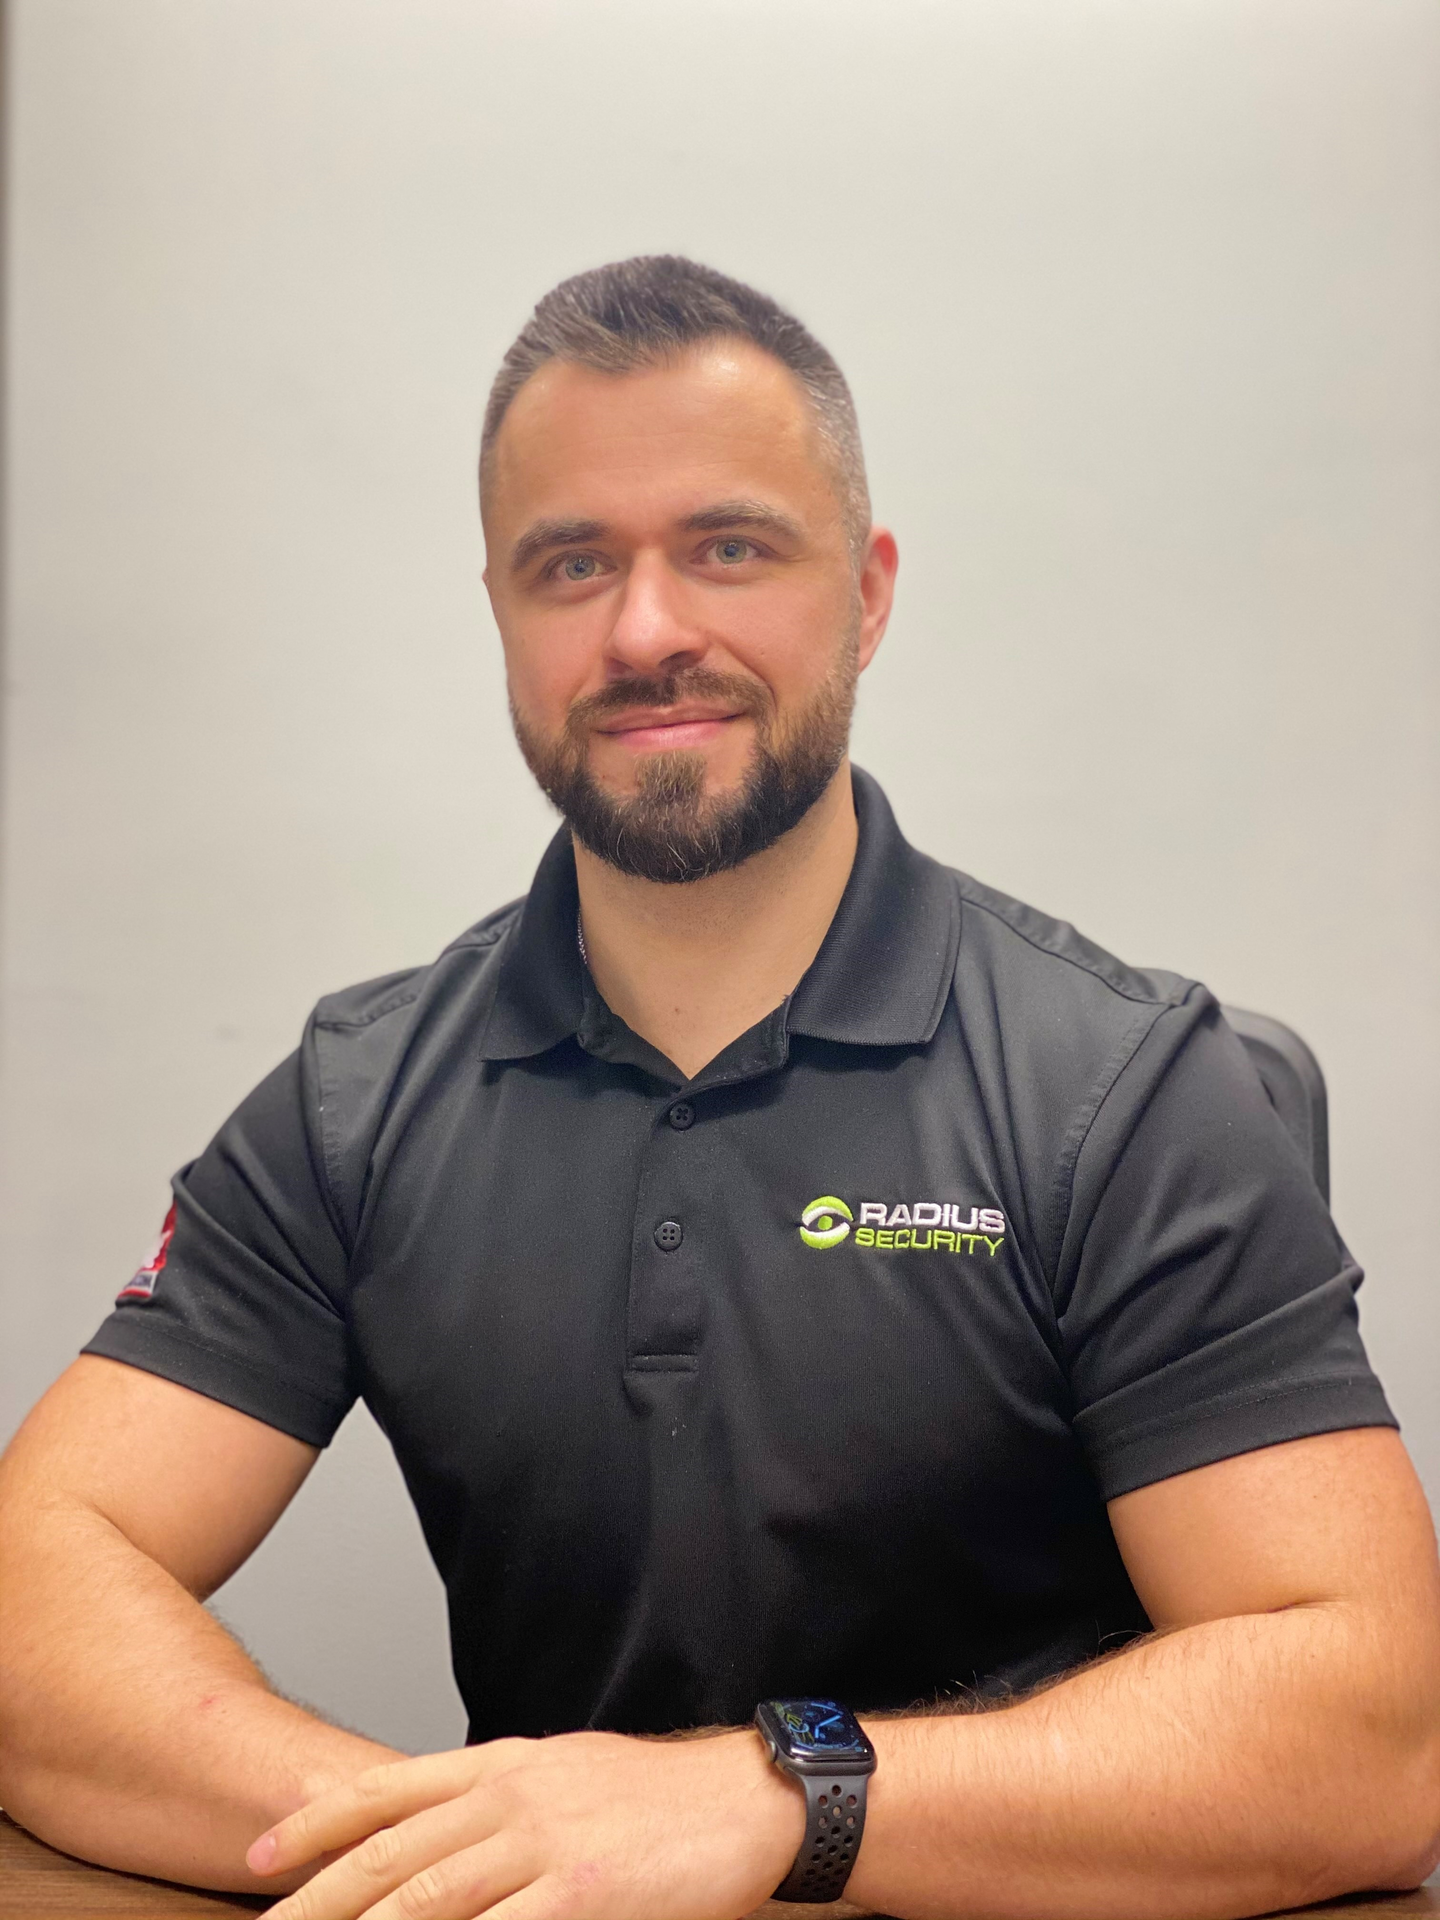 'False alarm filtering platforms are an essential step any command center can take. They save time and reduce operator fatigue.' - Aleksei Bulavko, Radius Security